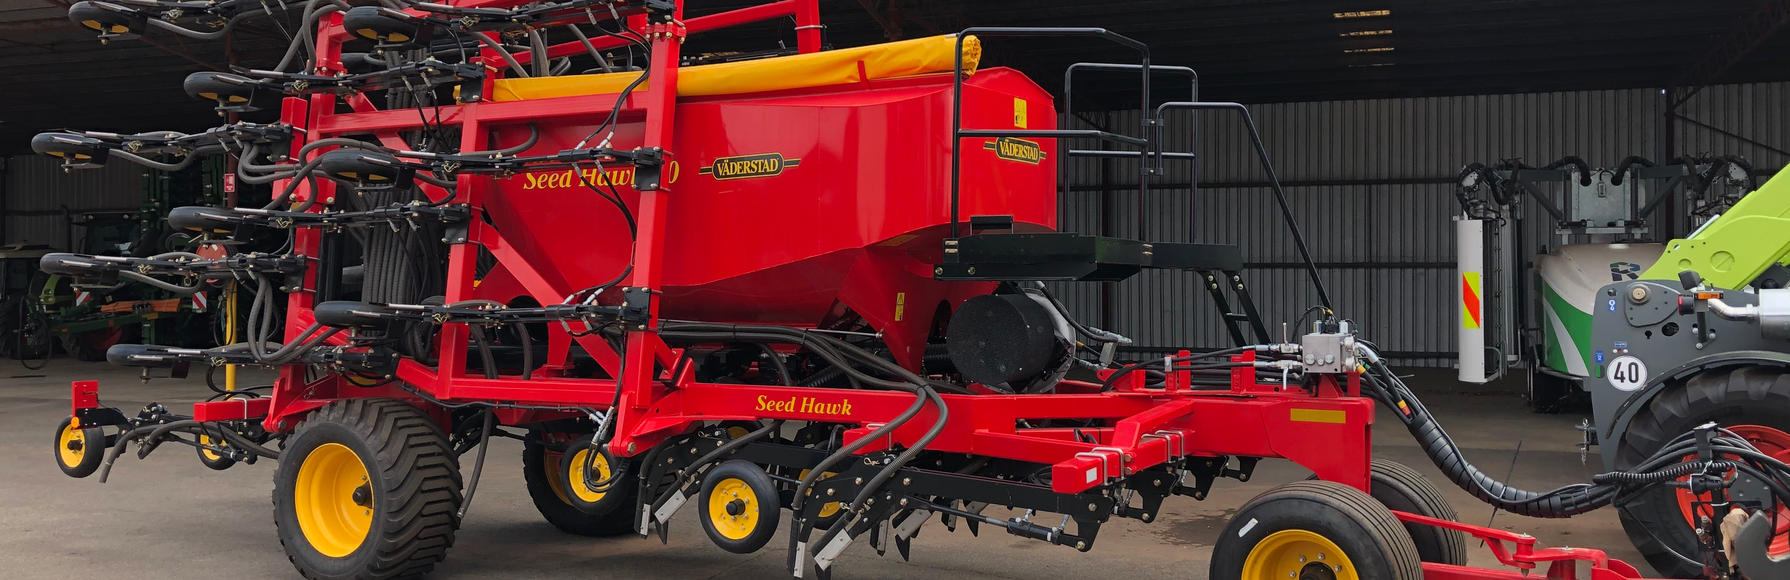 1x ONLY - NEW SEED HAWK 810 30 SERIES